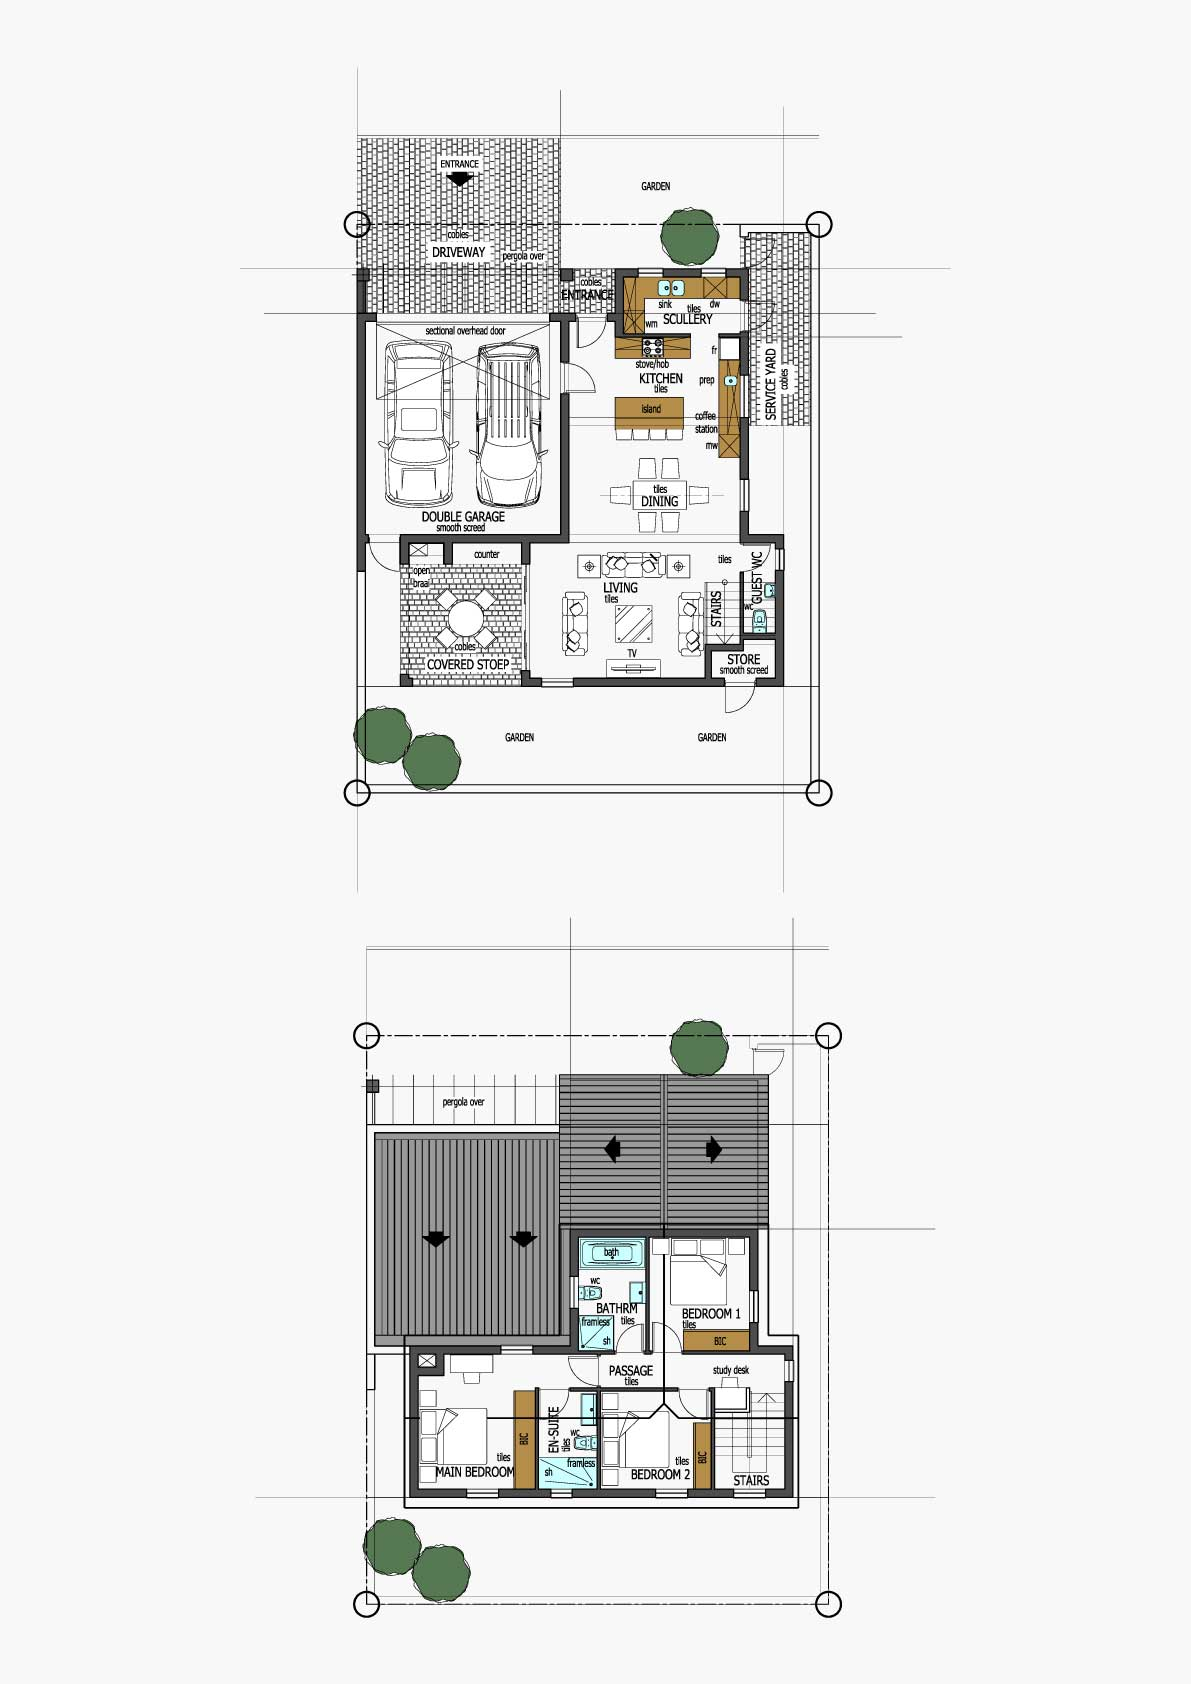 Homes Unit Layout - Type F